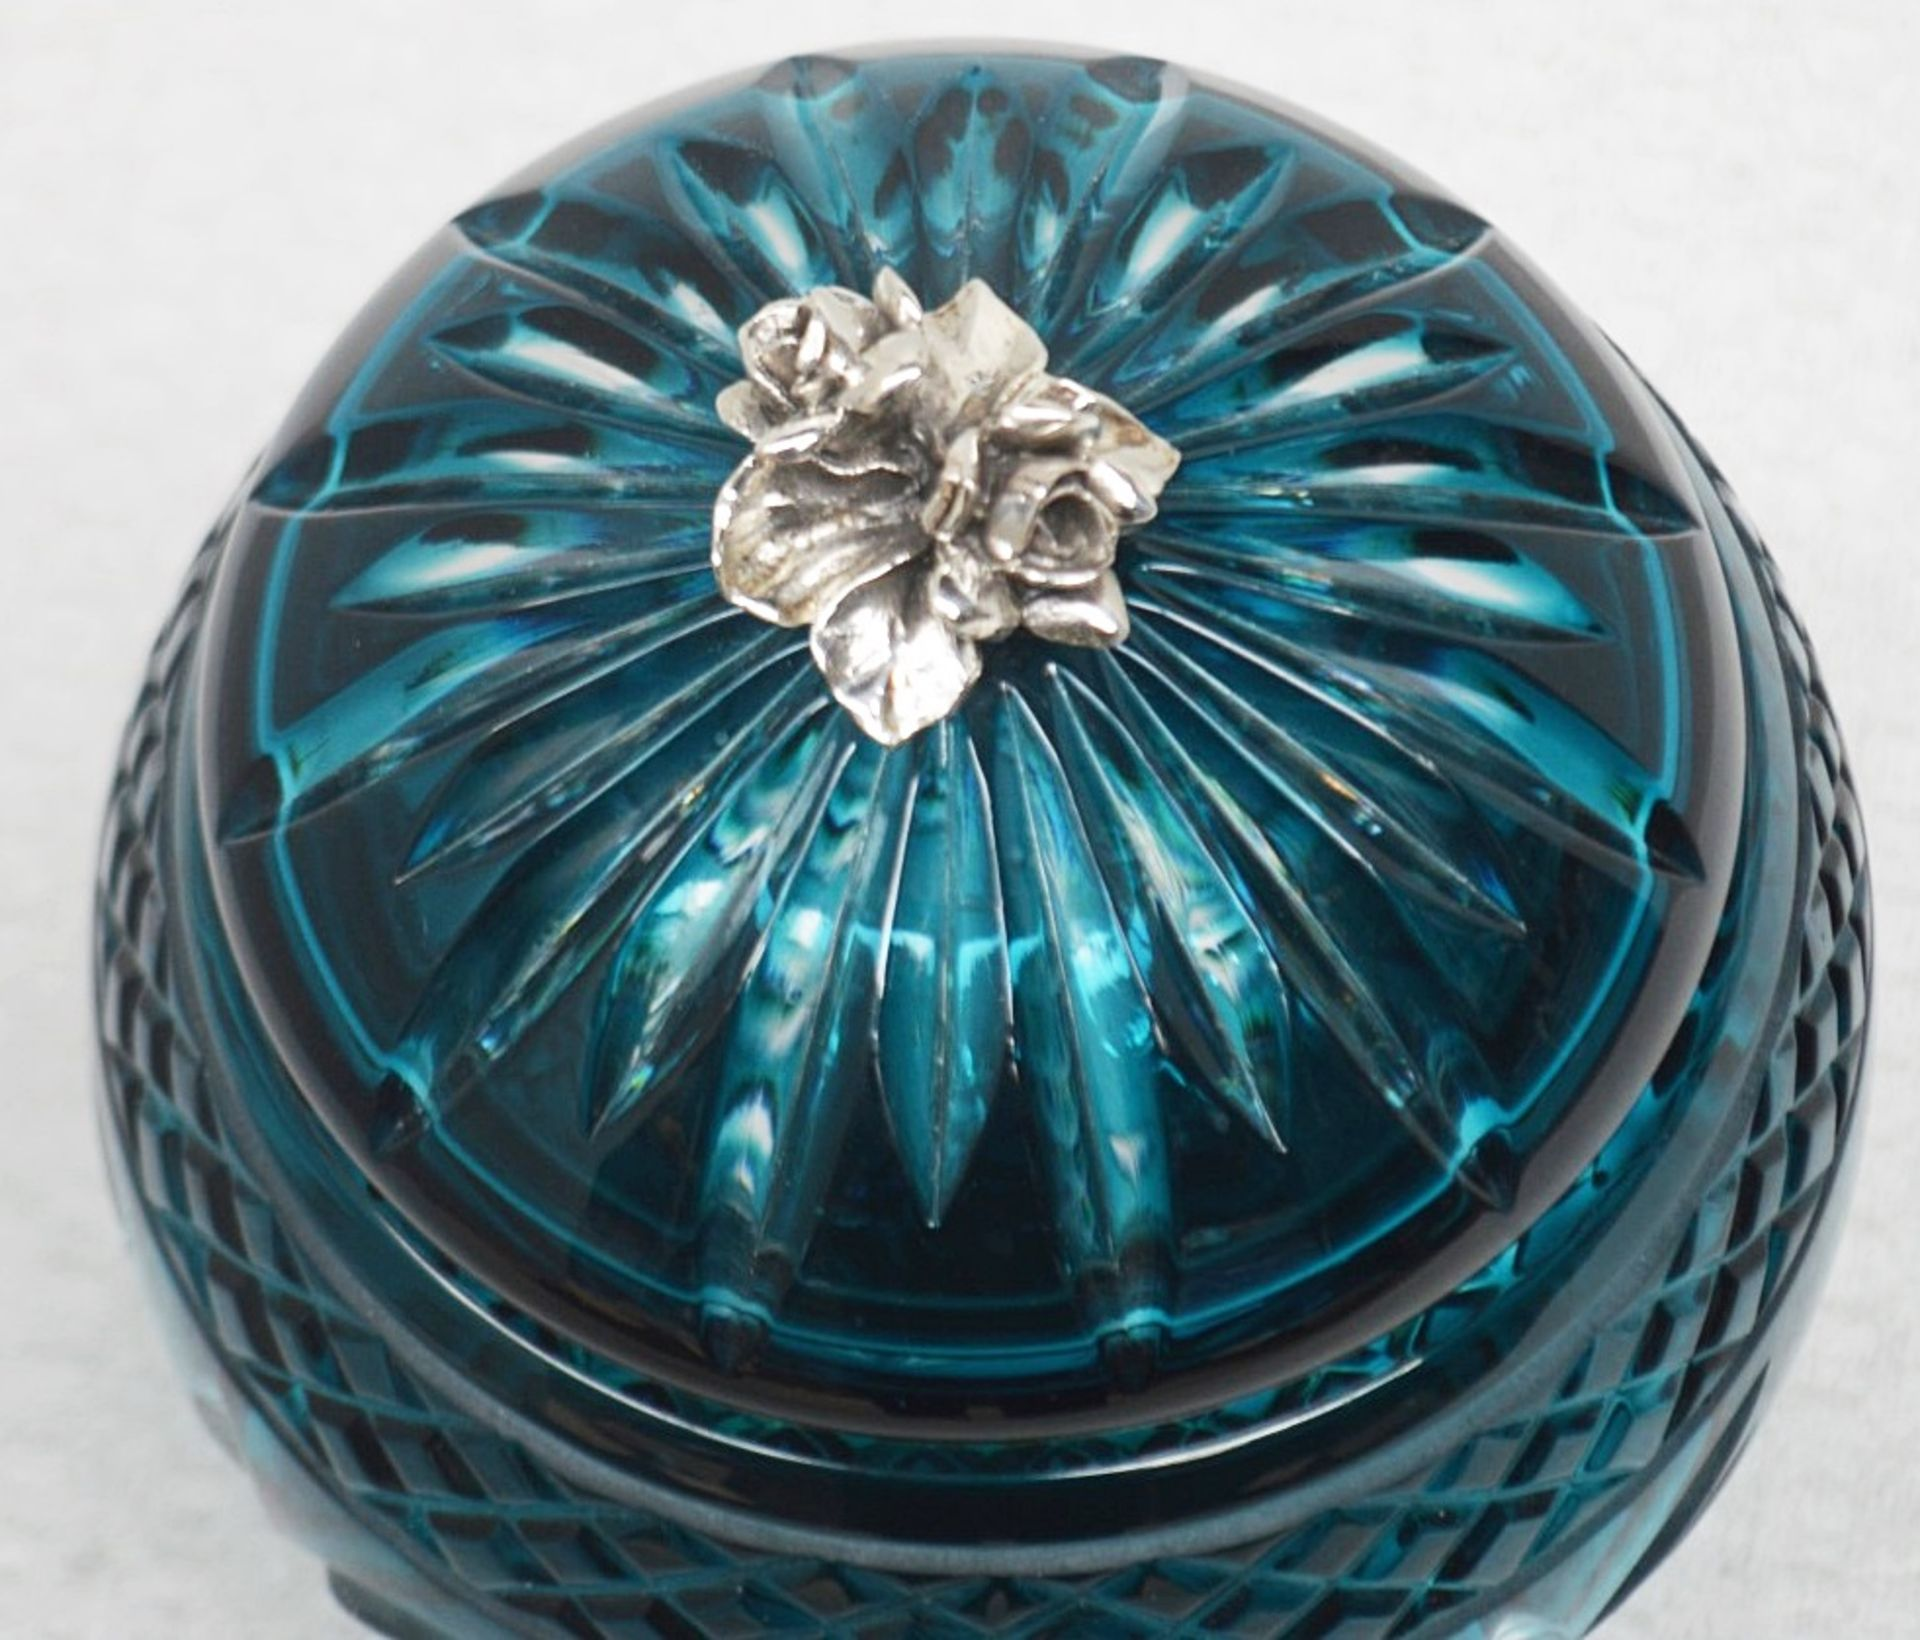 1 x BALDI 'Home Jewels' Italian Hand-crafted Artisan Crystal Coccinella Box In Turquoise - RRP £900 - Image 3 of 5